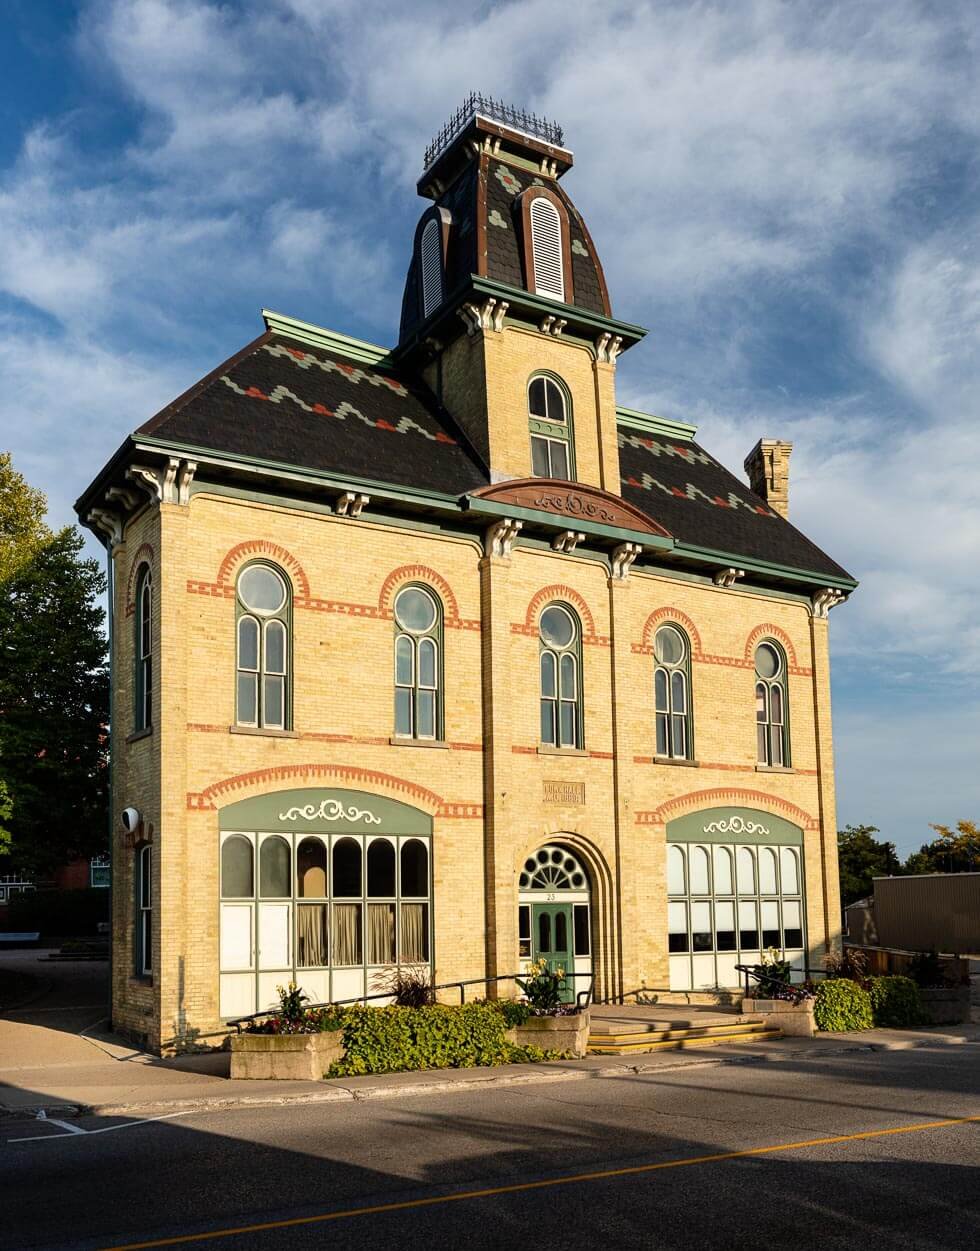 clinton town hall, clinton, ontario, photo by david lasker photography for david lasker communications